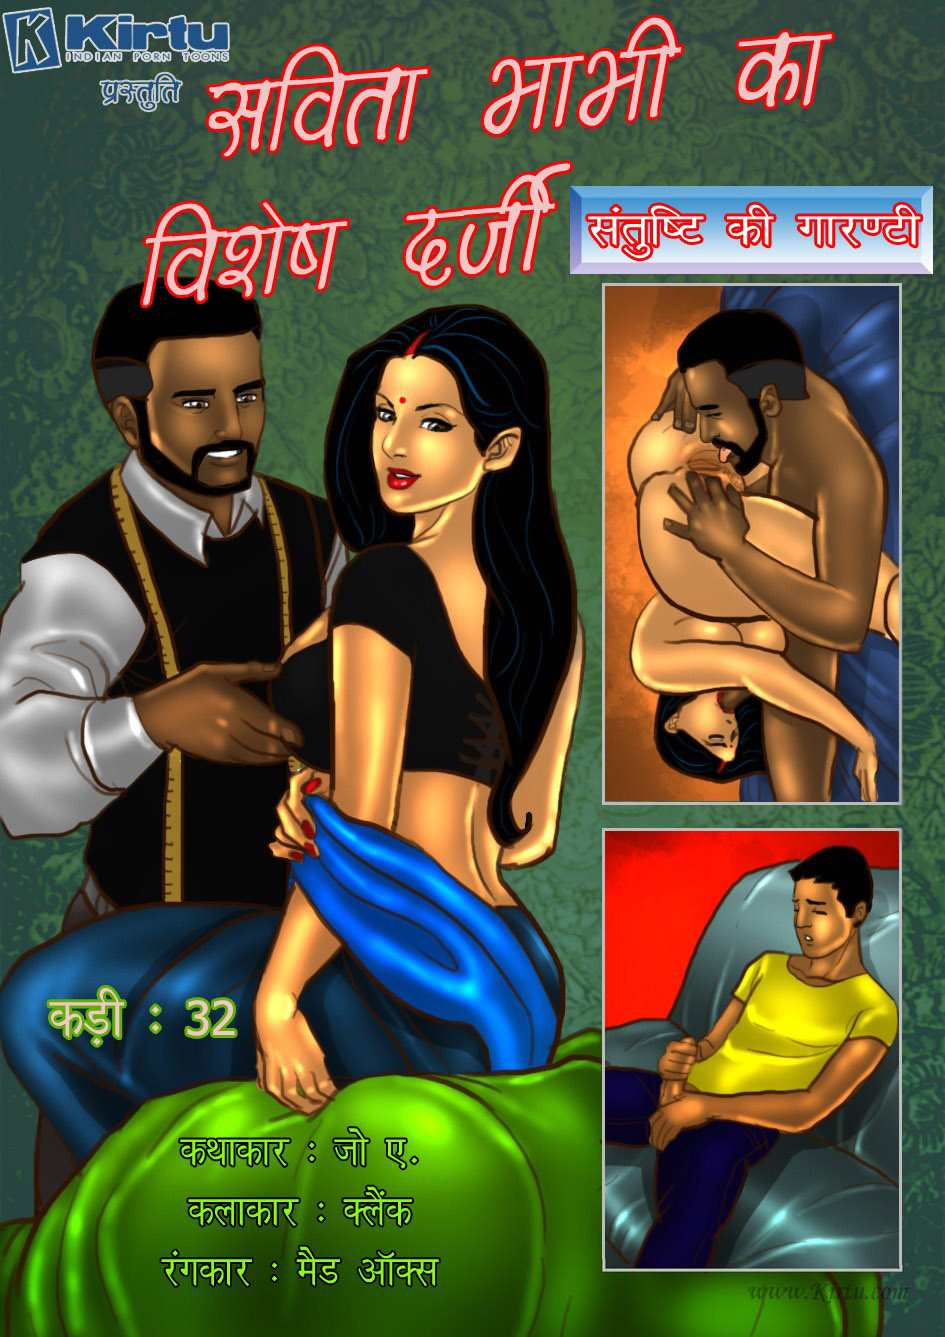 Xxx mom comics in hindi